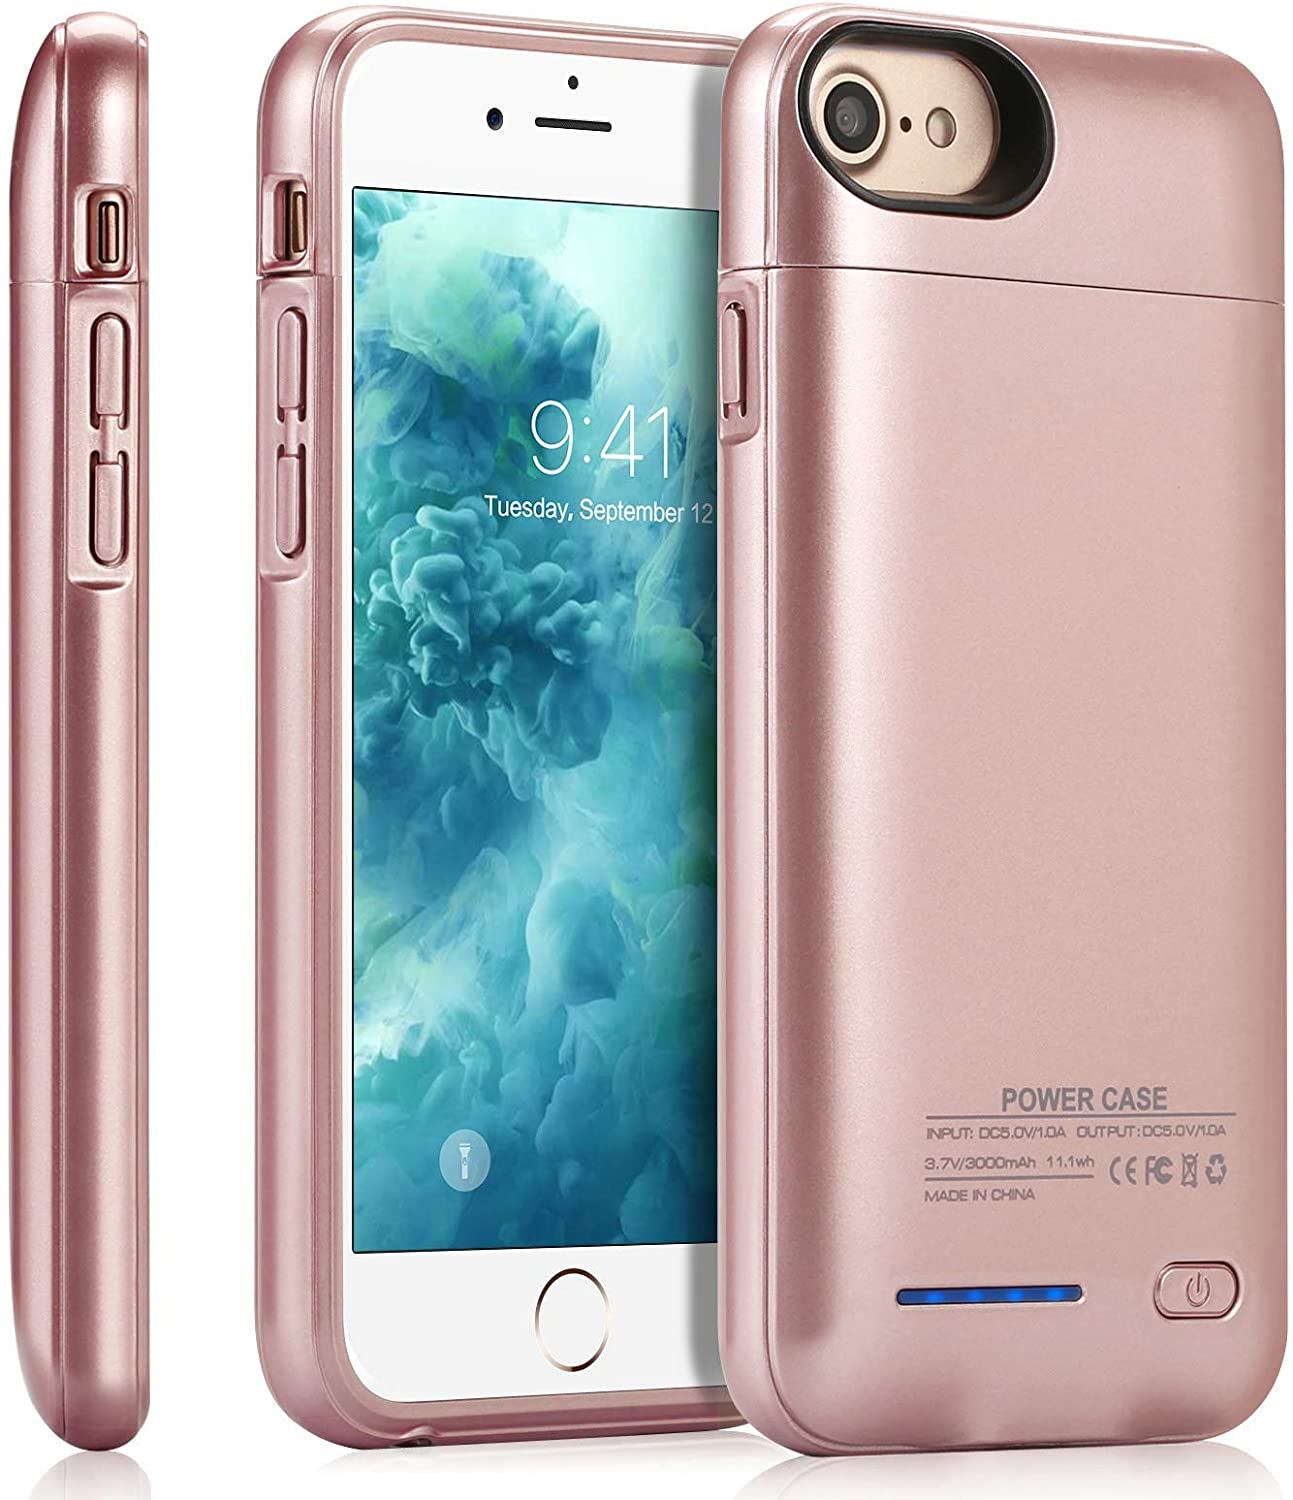 Battery Case for iPhone 6/6s/7/8/(SE 2020),JUBOTY 3000mAh Magnetic Battery Charging Case Slim Portable Rechargeable Charger Case for iPhone 6/6s/7/8